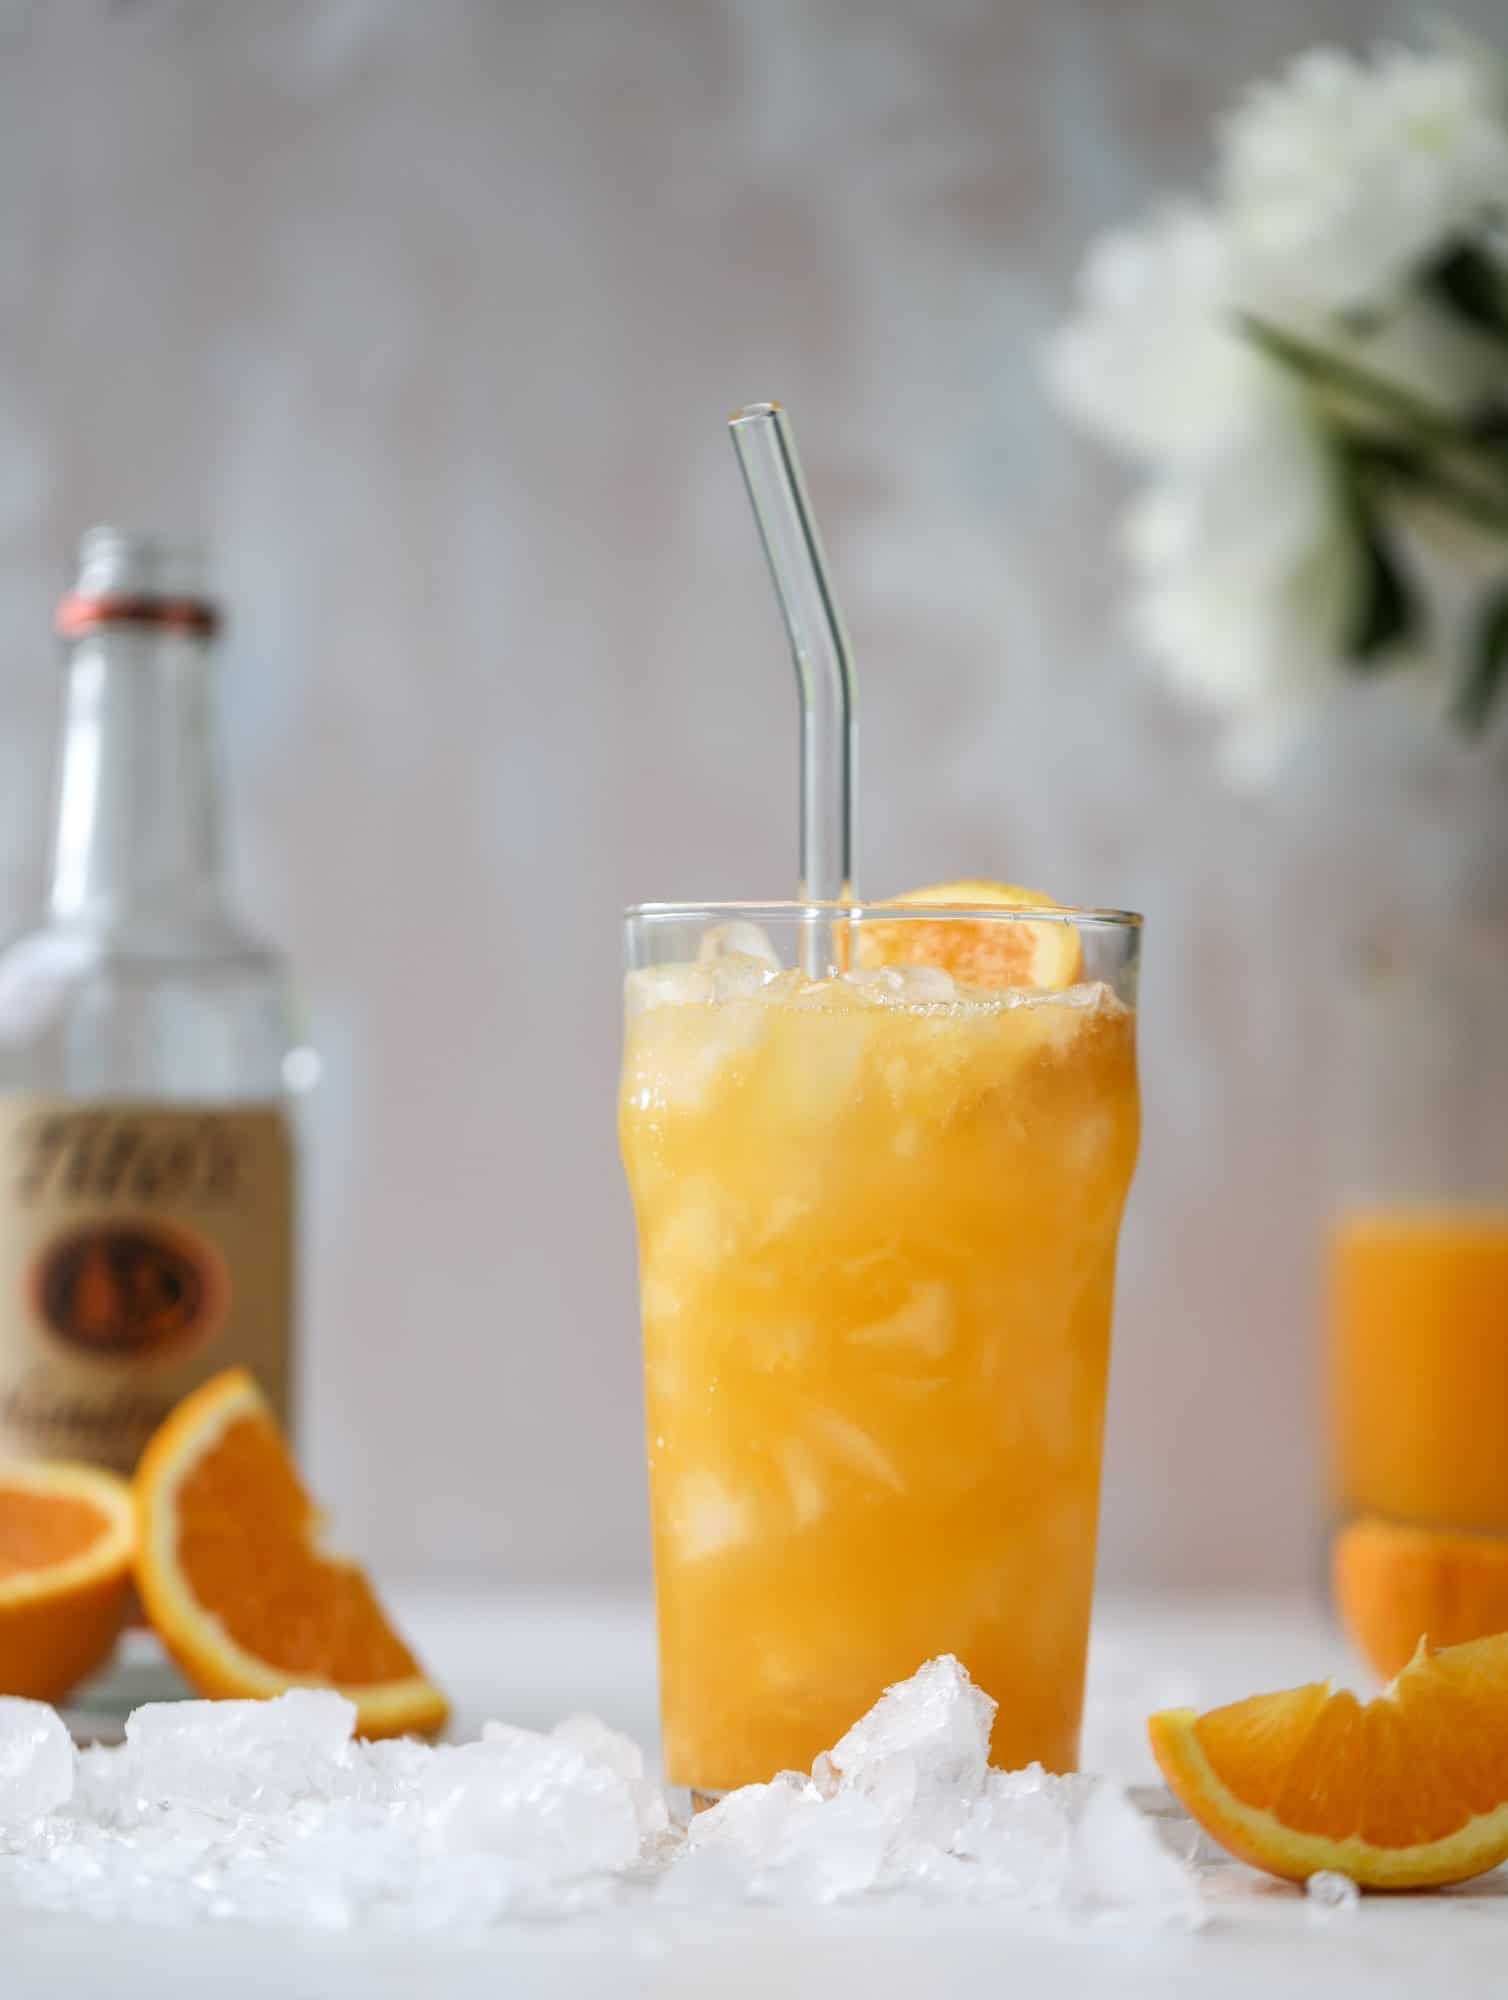 Orange Crush The Orange Crush Cocktail From Ocean City Recipe Orange Crush Cocktail Orange Drinks Fresh Drinks